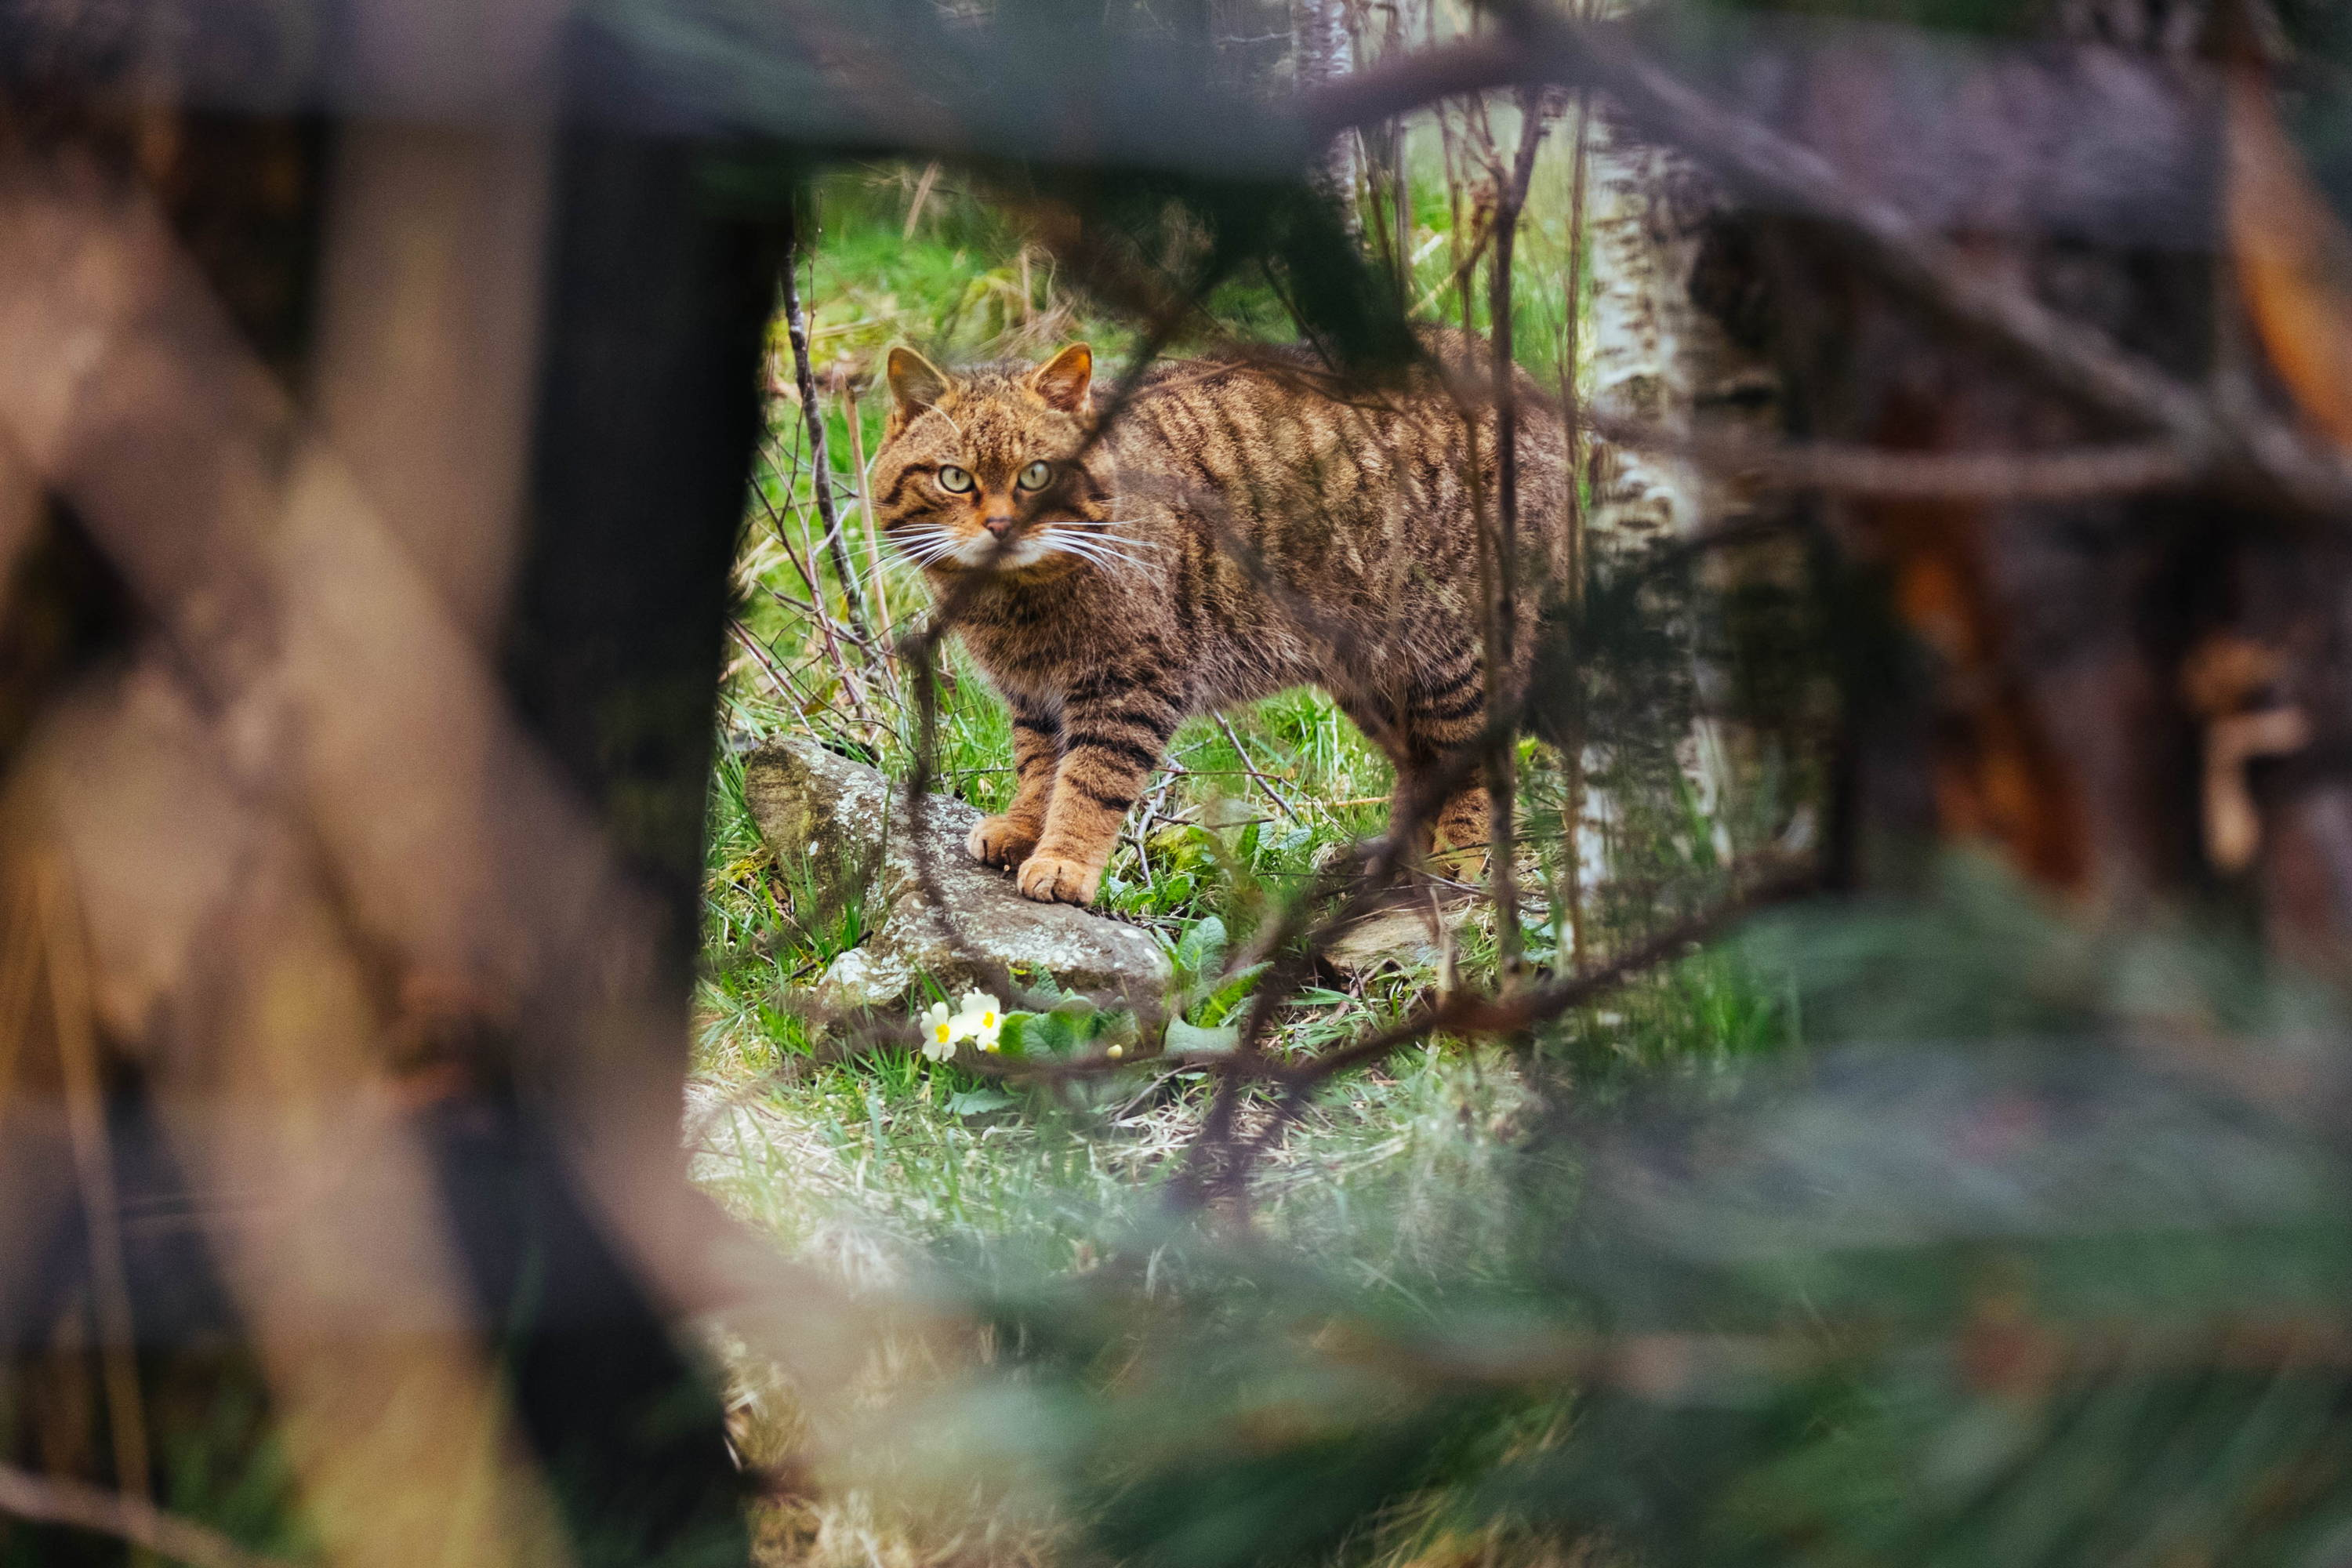 A wildcat stands among the primroses and pears through a gap in the trees